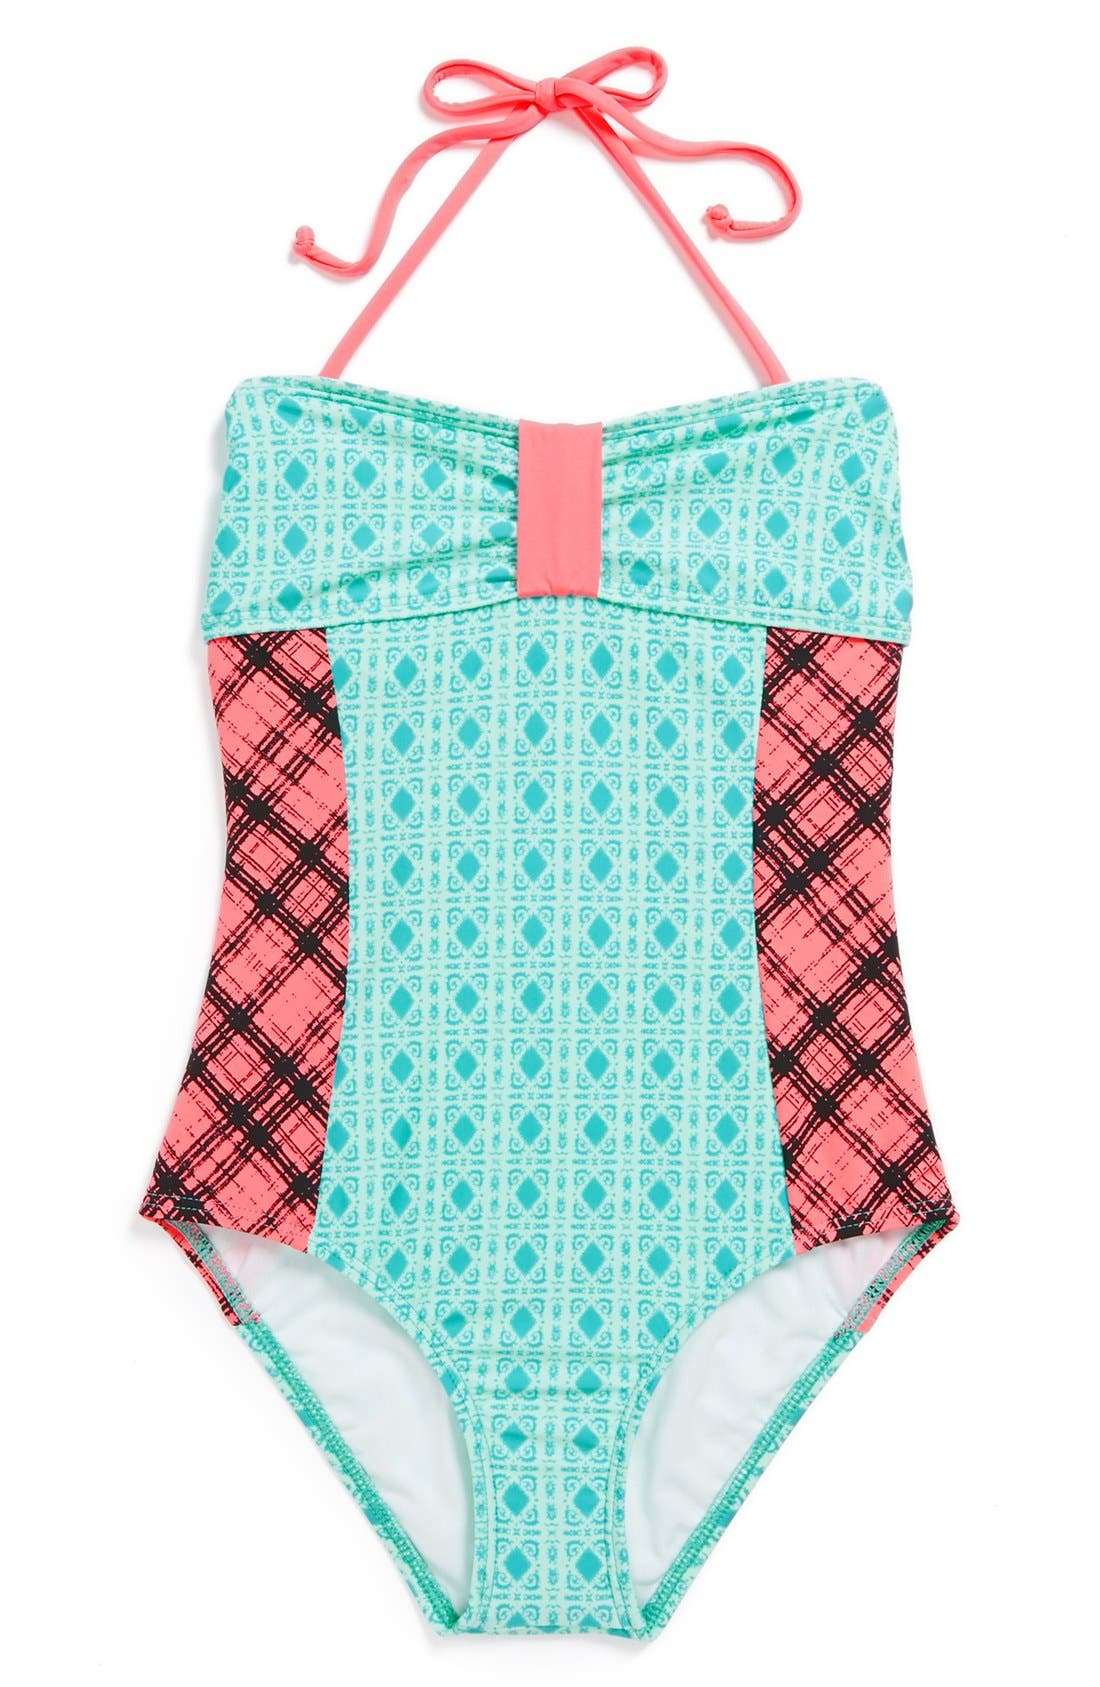 Main Image - Ella Moss Mixed Print One-Piece Swimsuit (Big Girls)